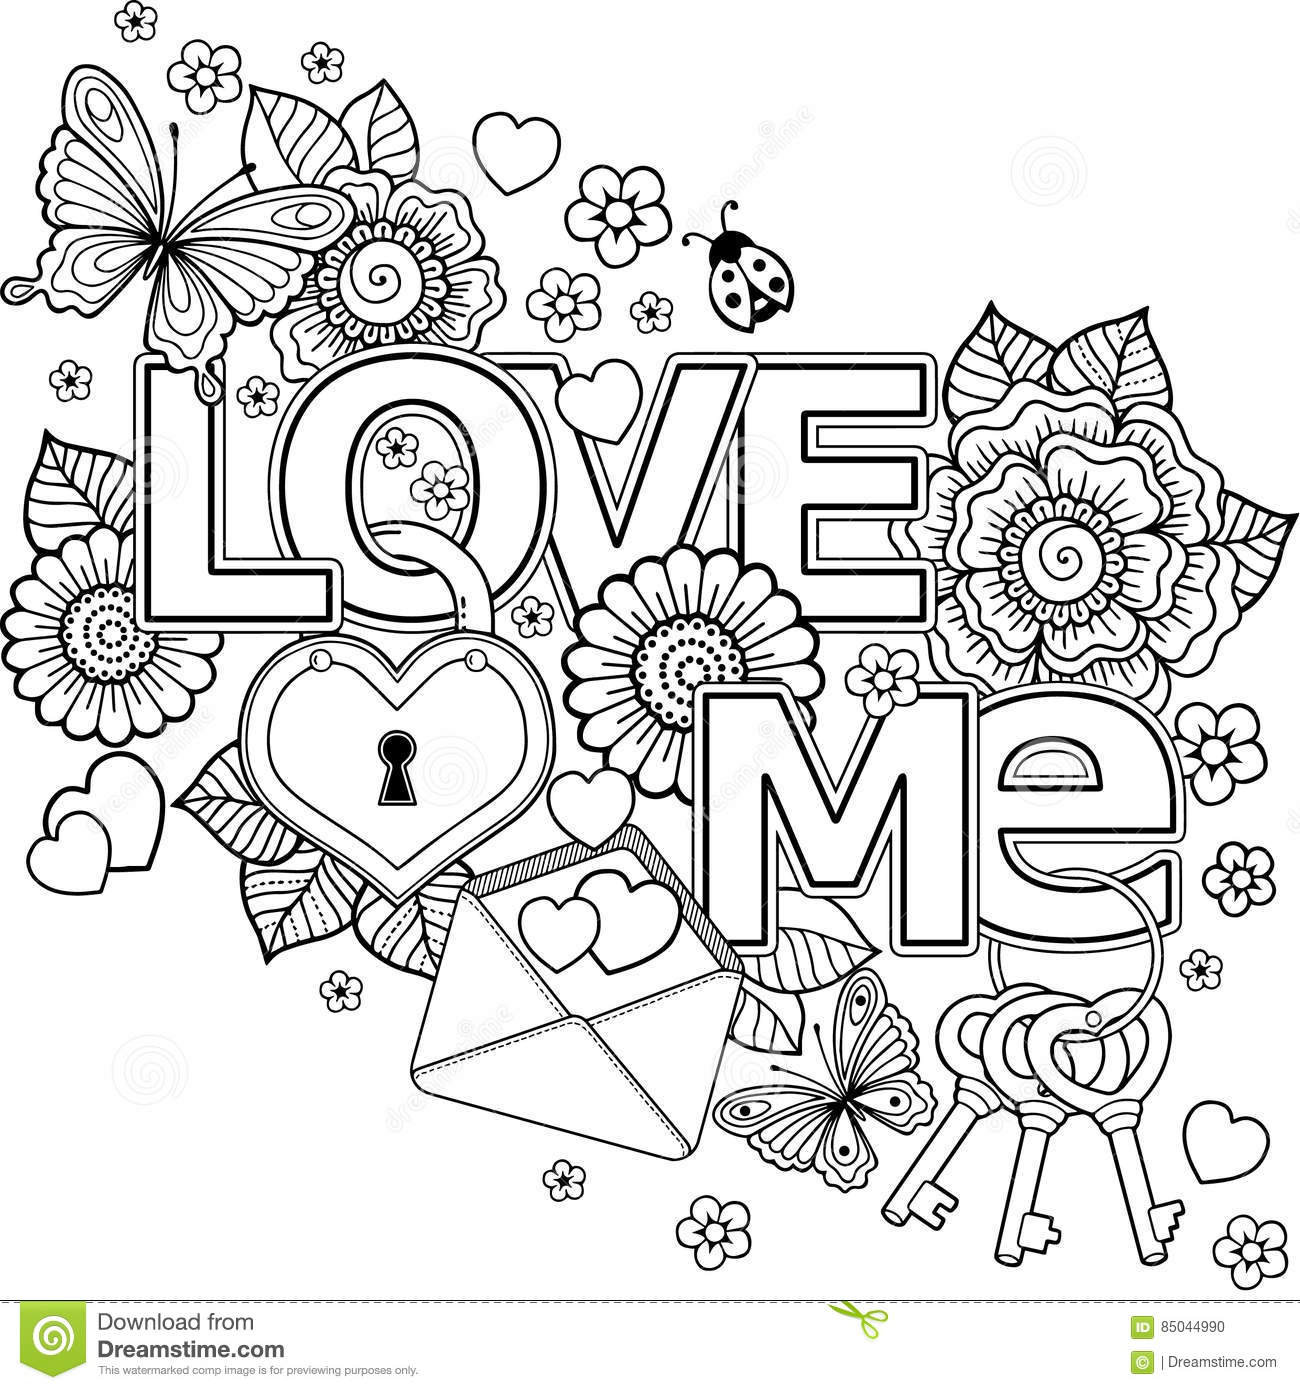 Abstract Coloring Pages With Words Pictures to Pin on